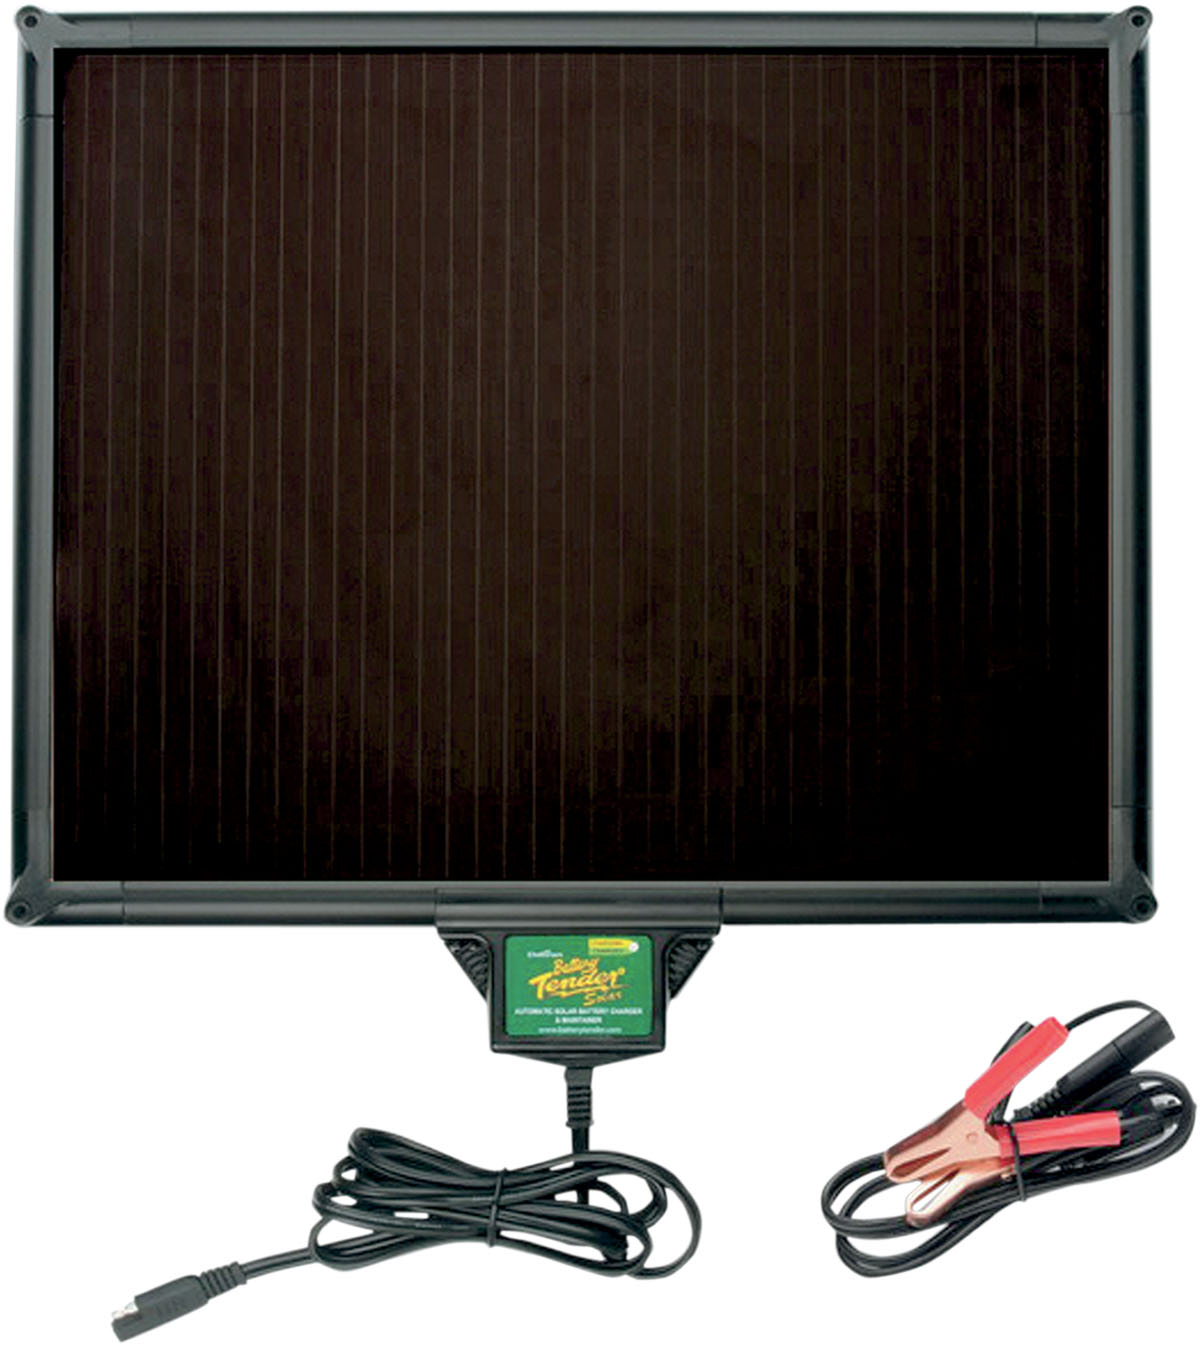 BATTERY TENDER BATTERY CHARGER SOLAR 5WATT (#021-1163)